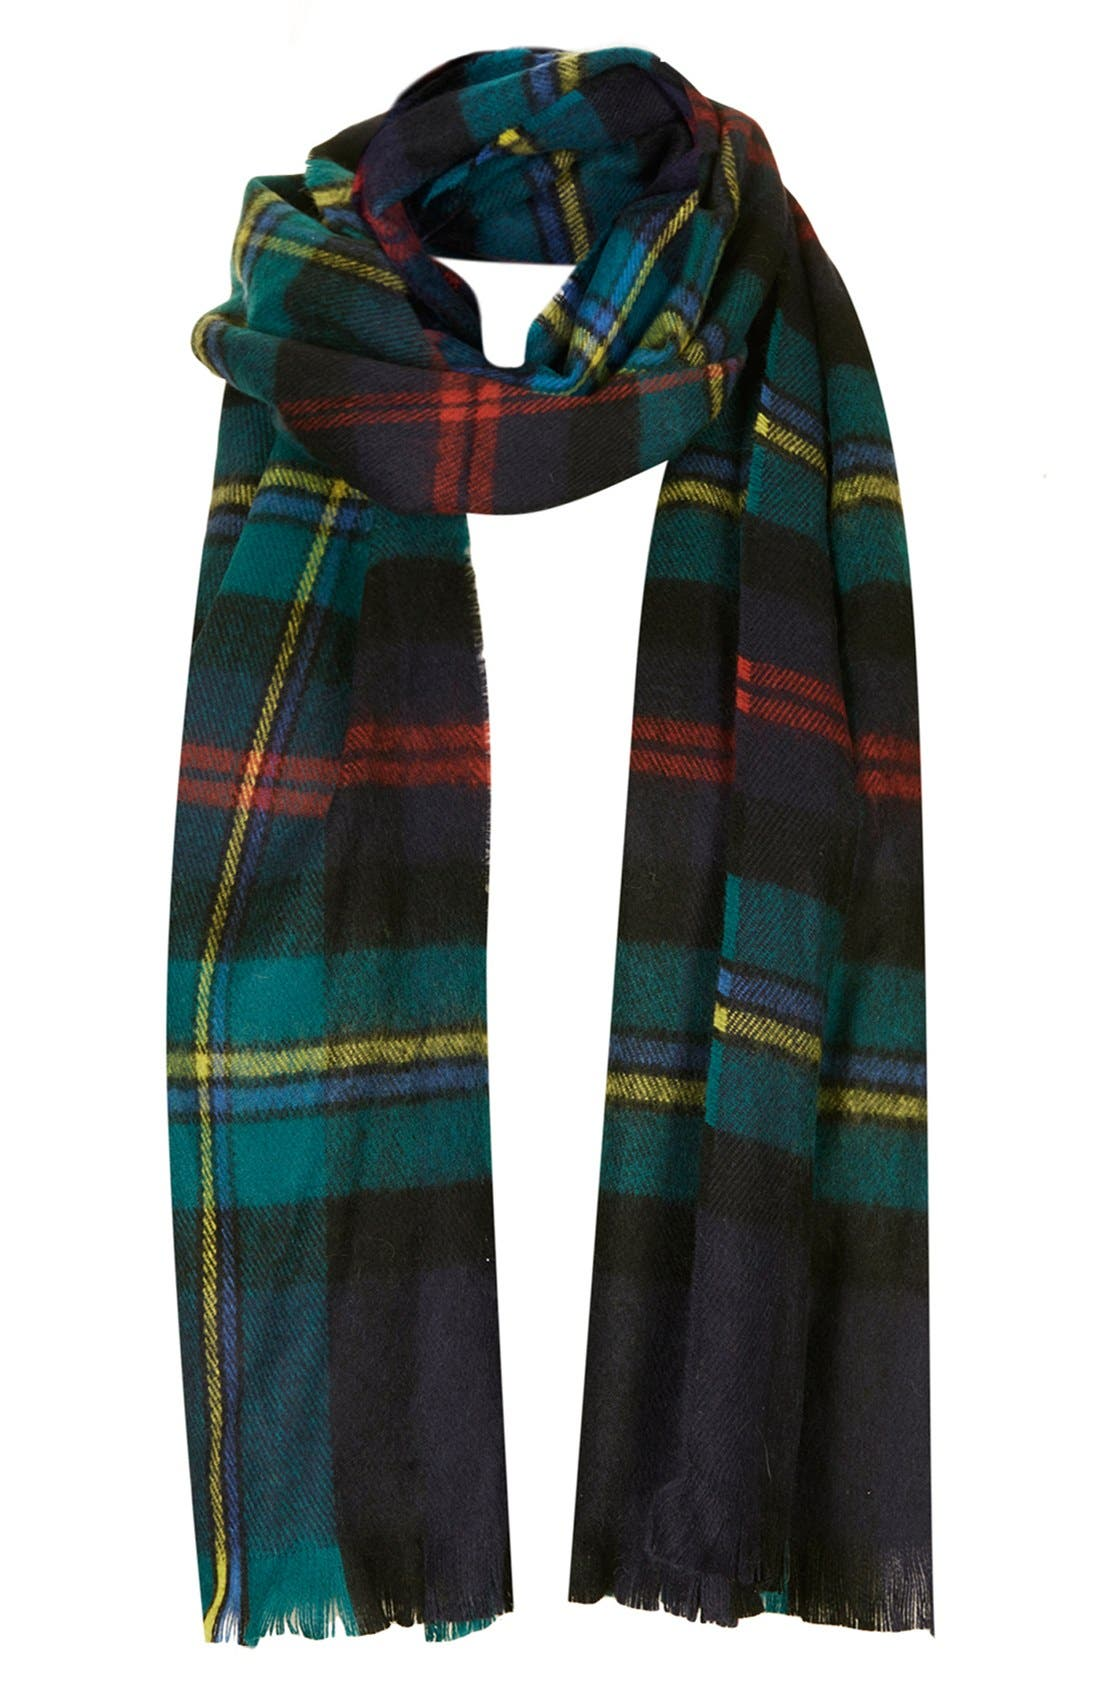 Alternate Image 1 Selected - Topshop 'New Traditional' Check Print Scarf